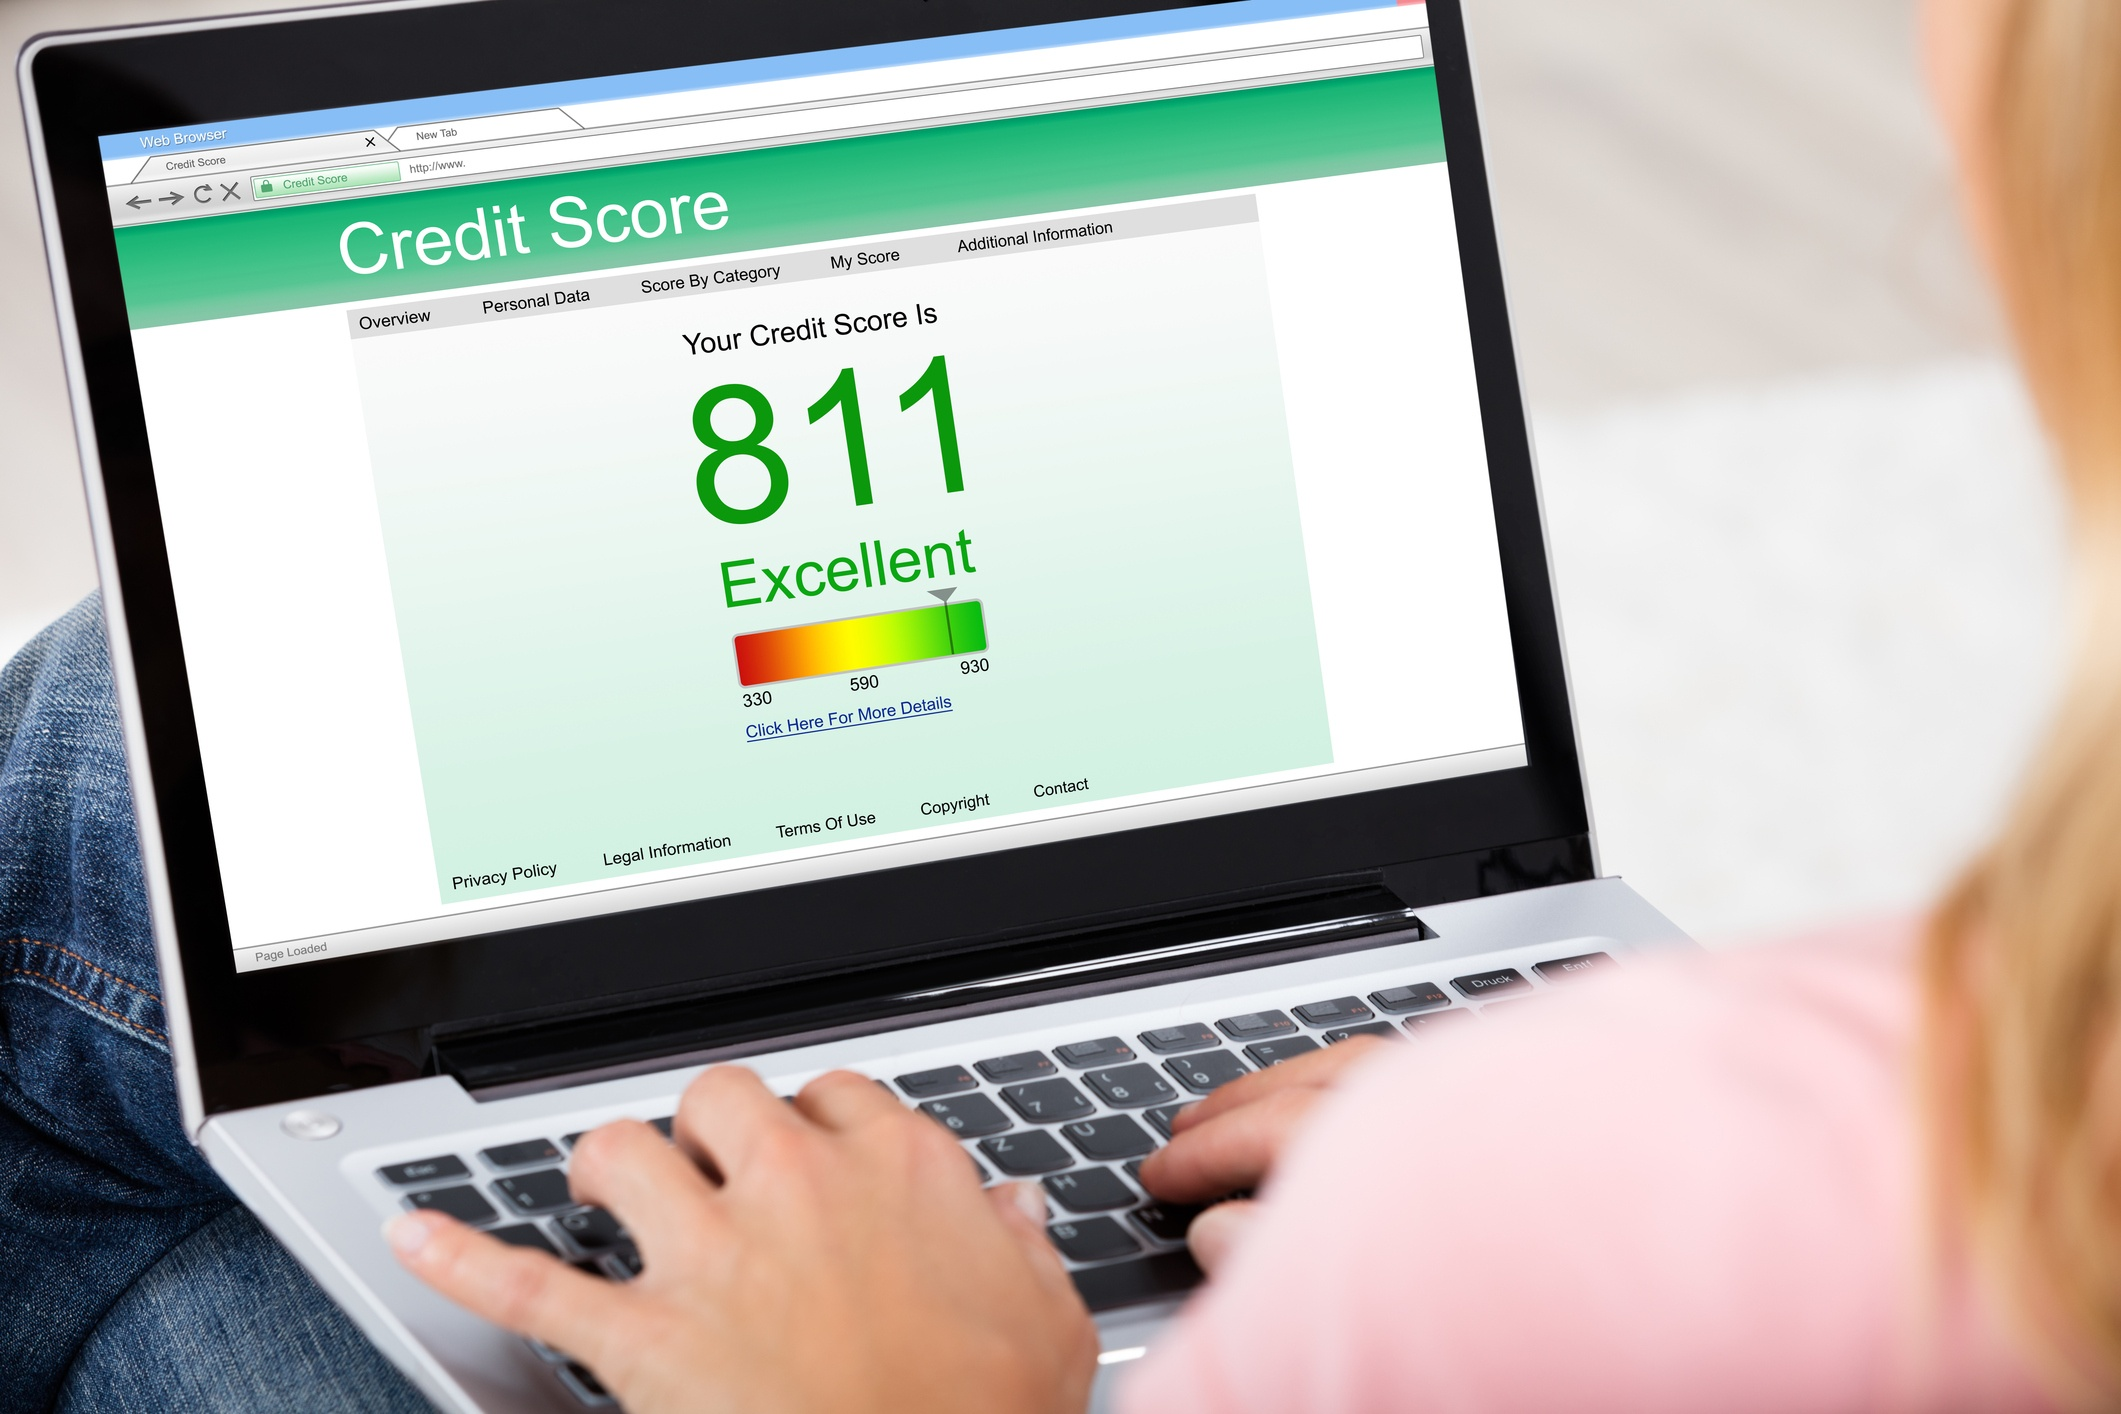 Computer screen with credit score of 811.